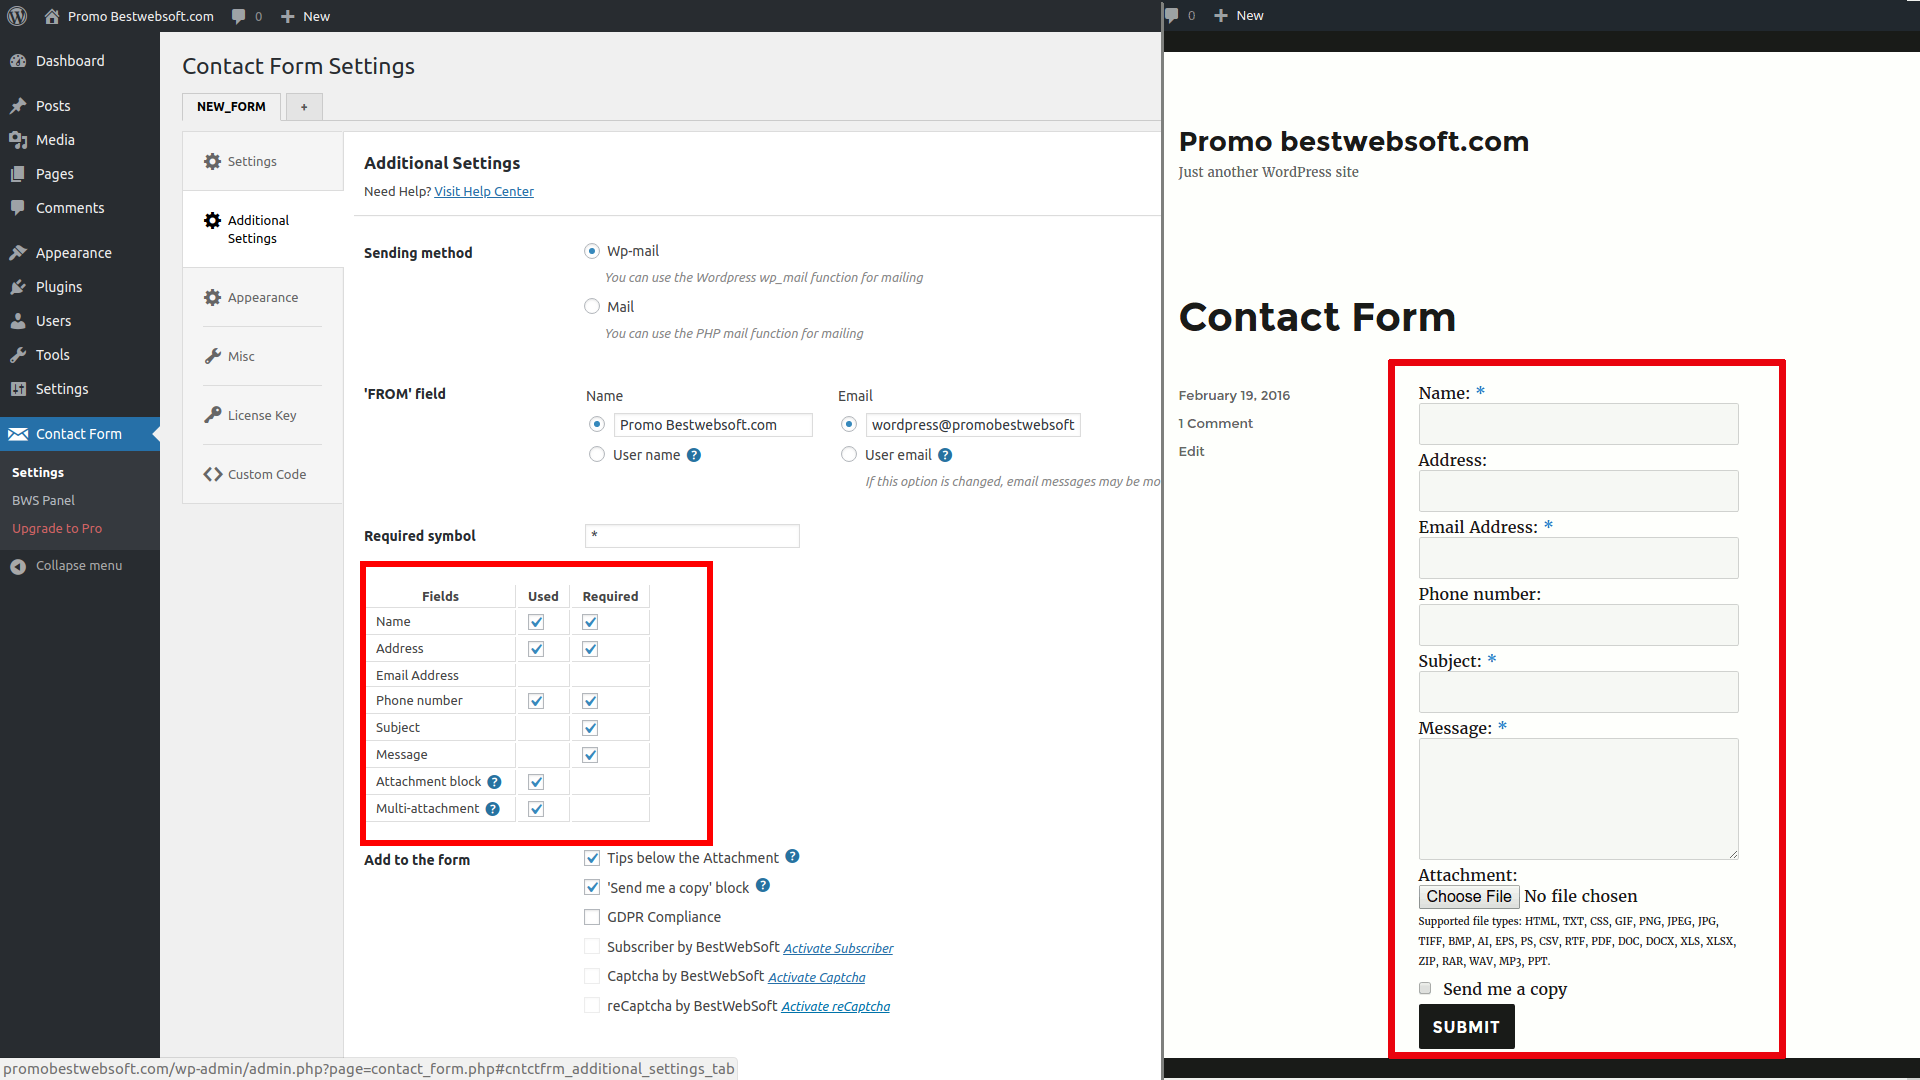 Add or remove additional fields easily and label any contact form fields you want.